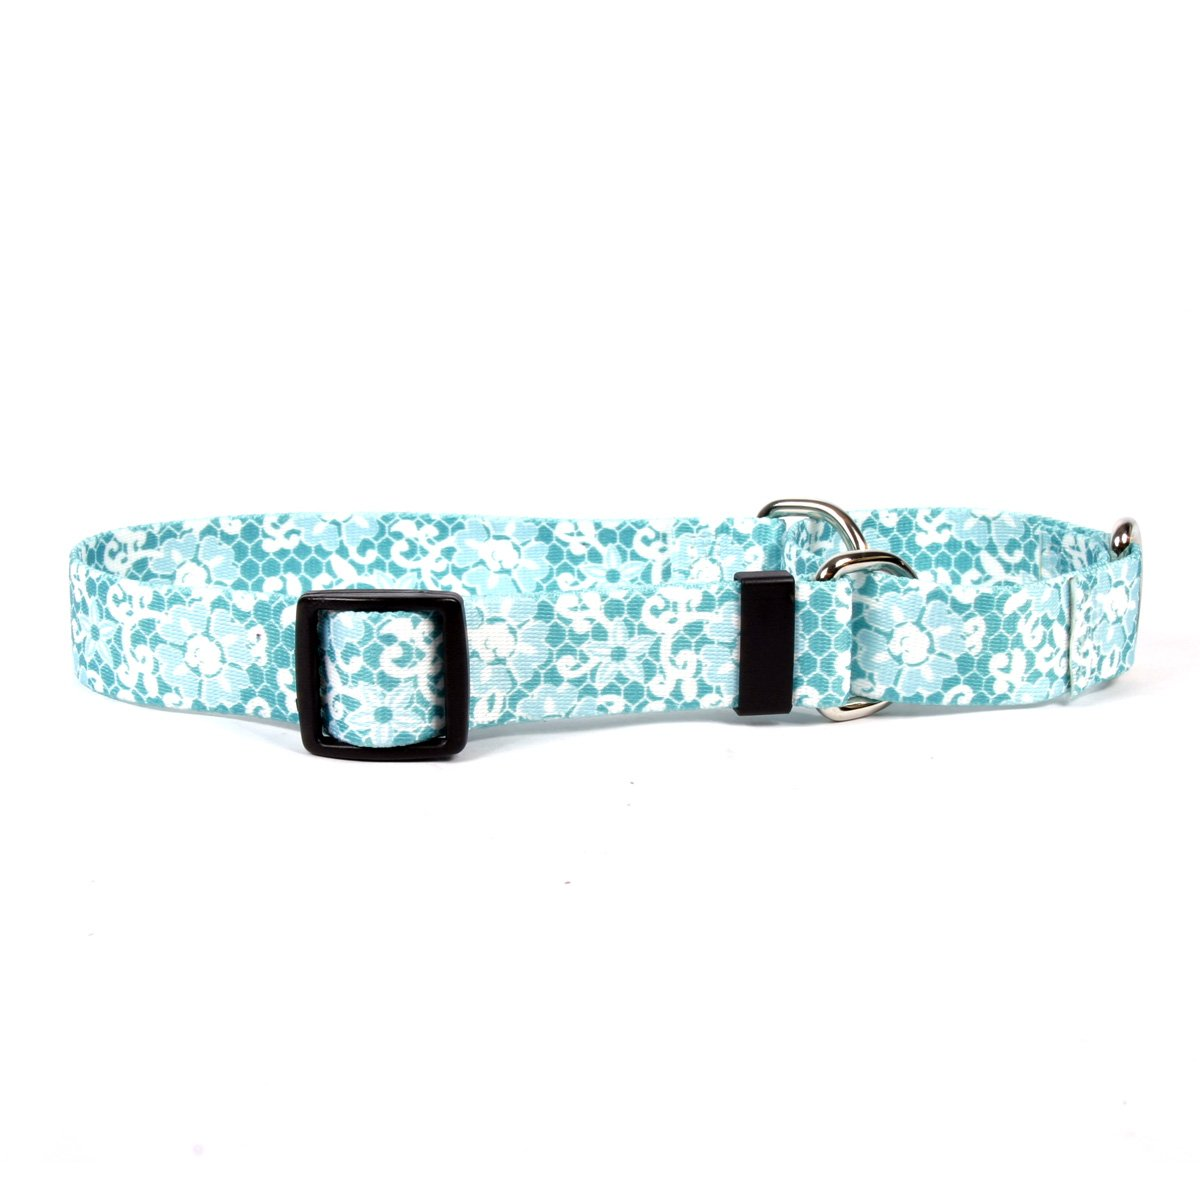 Yellow Dog Design Teal Lace Flowers Martingale Dog Collar-Size Large-1'' Wide and fits Neck 18 to 26'' by Yellow Dog Design